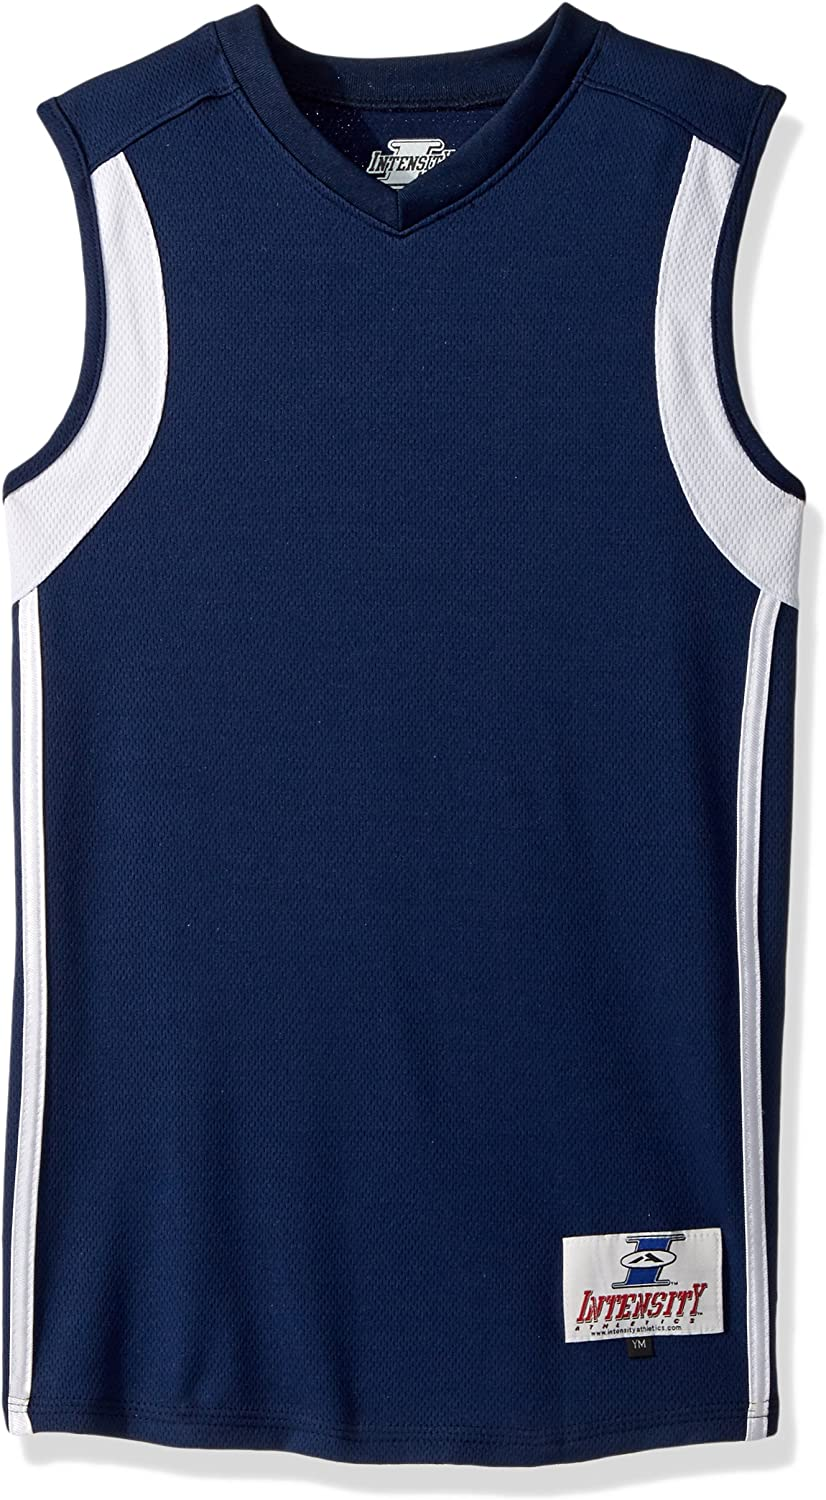 Intensity Boys Low Post Fitted Basketball Jersey